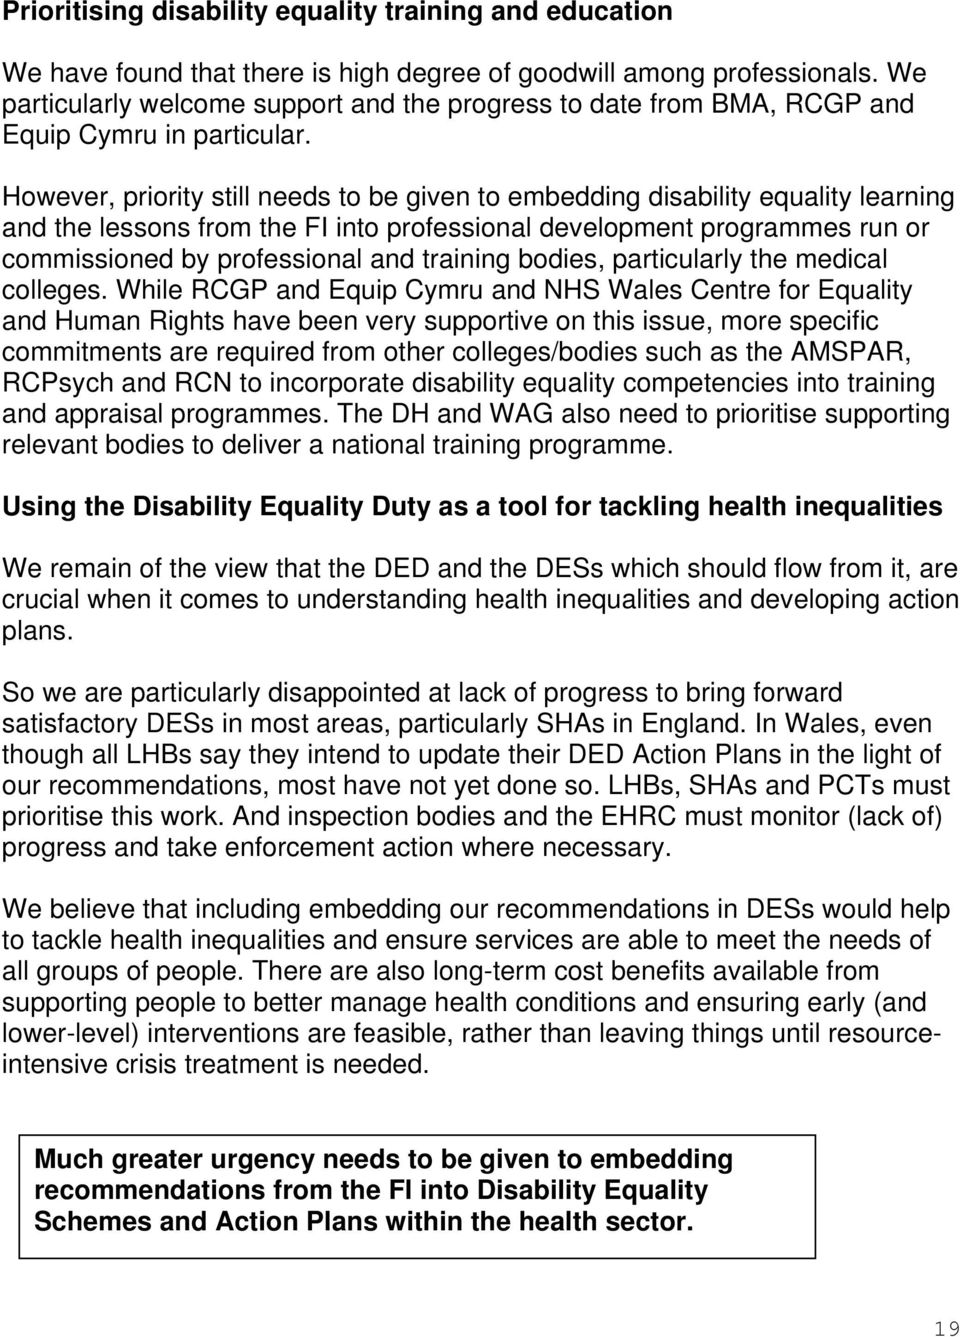 However, priority still needs to be given to embedding disability equality learning and the lessons from the FI into professional development programmes run or commissioned by professional and